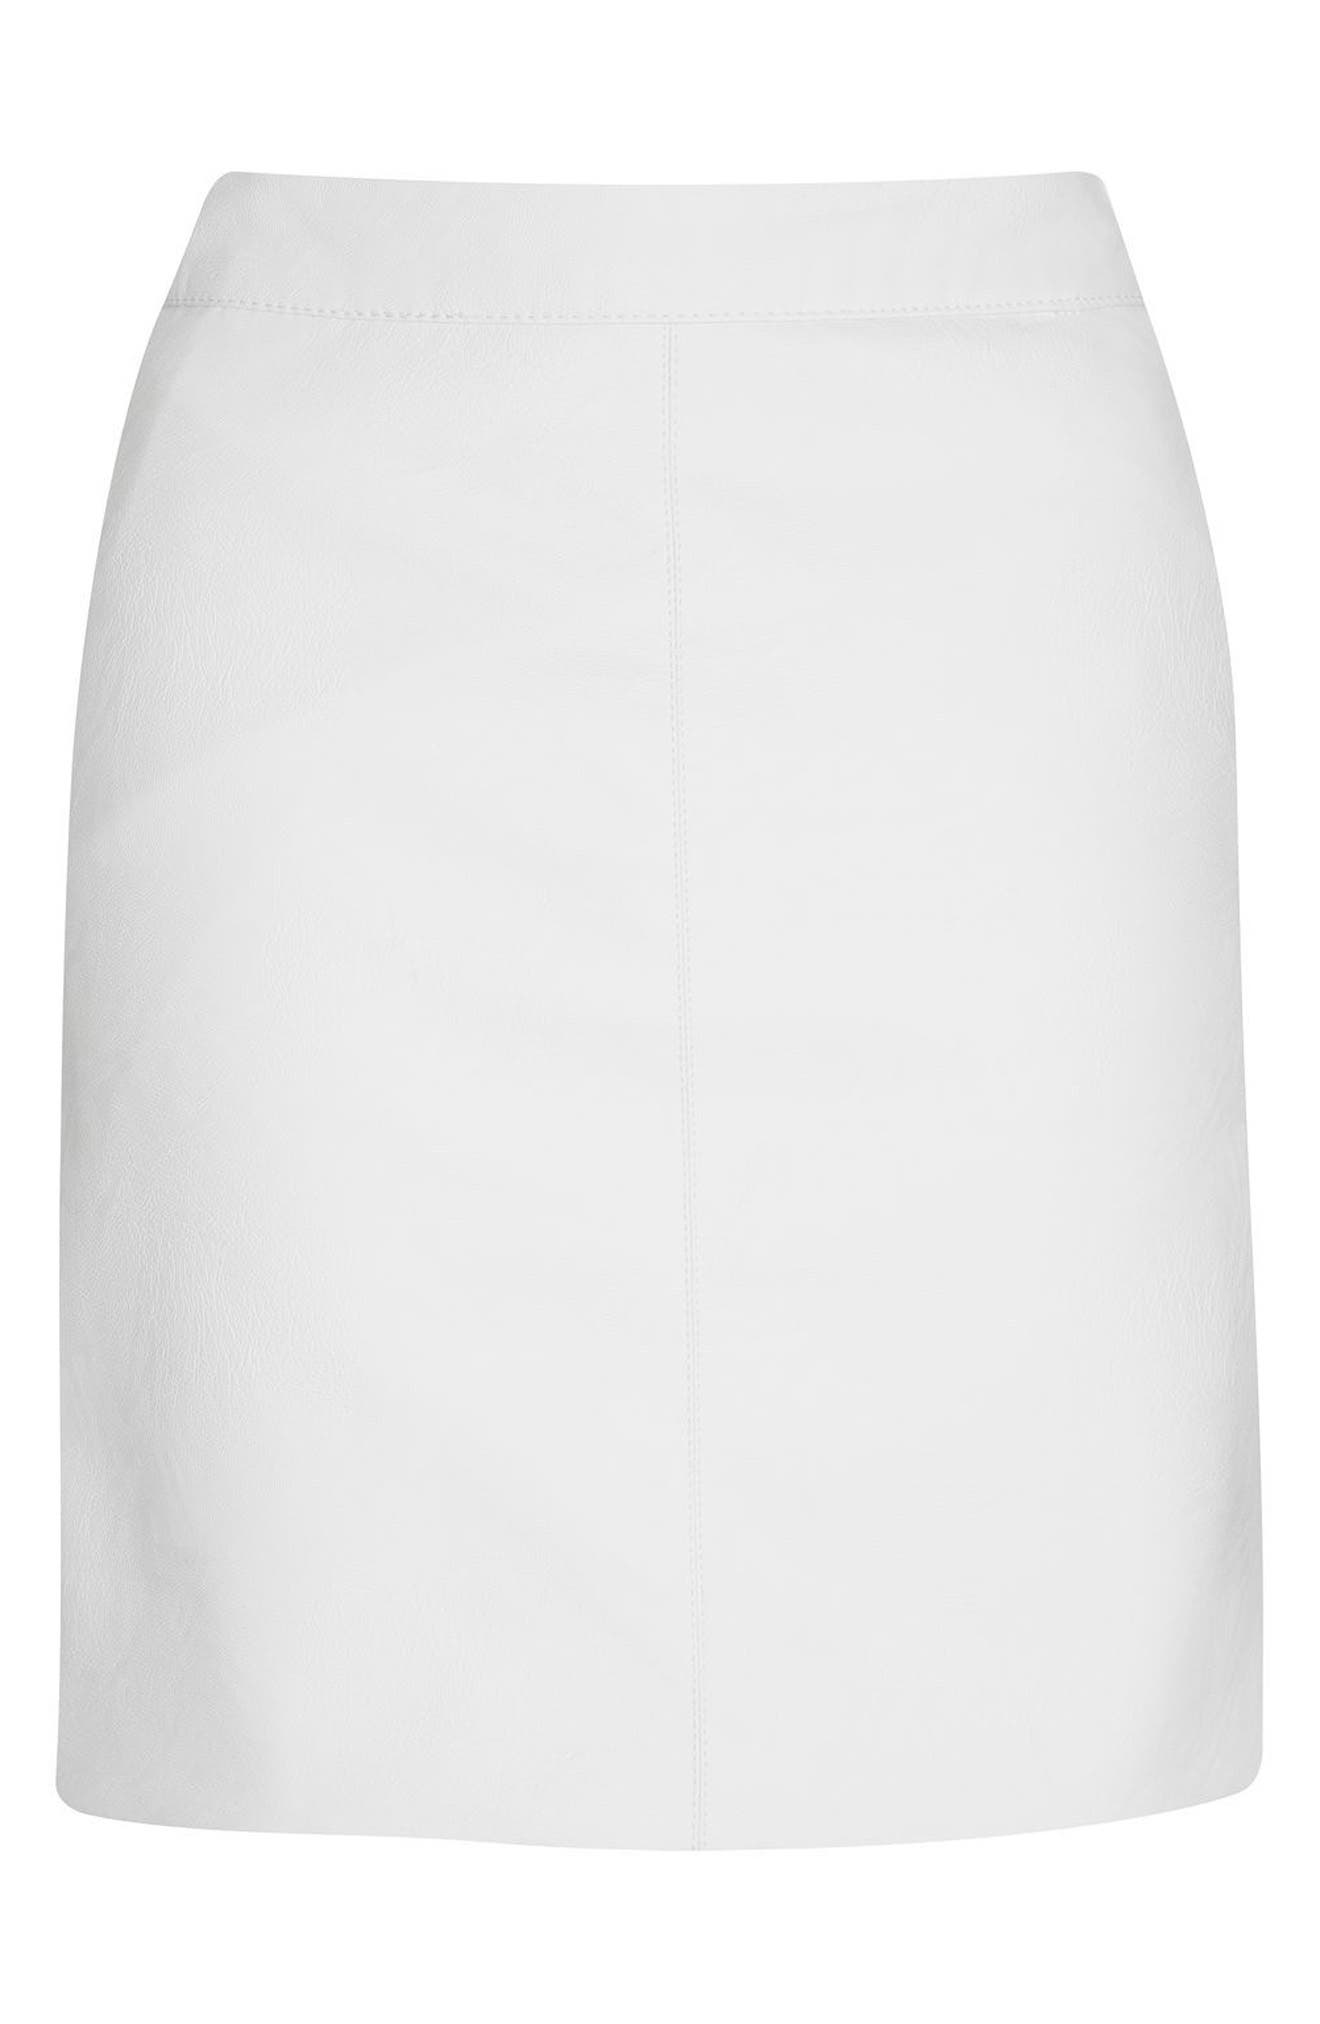 Faux Leather Pencil Skirt,                             Alternate thumbnail 5, color,                             White